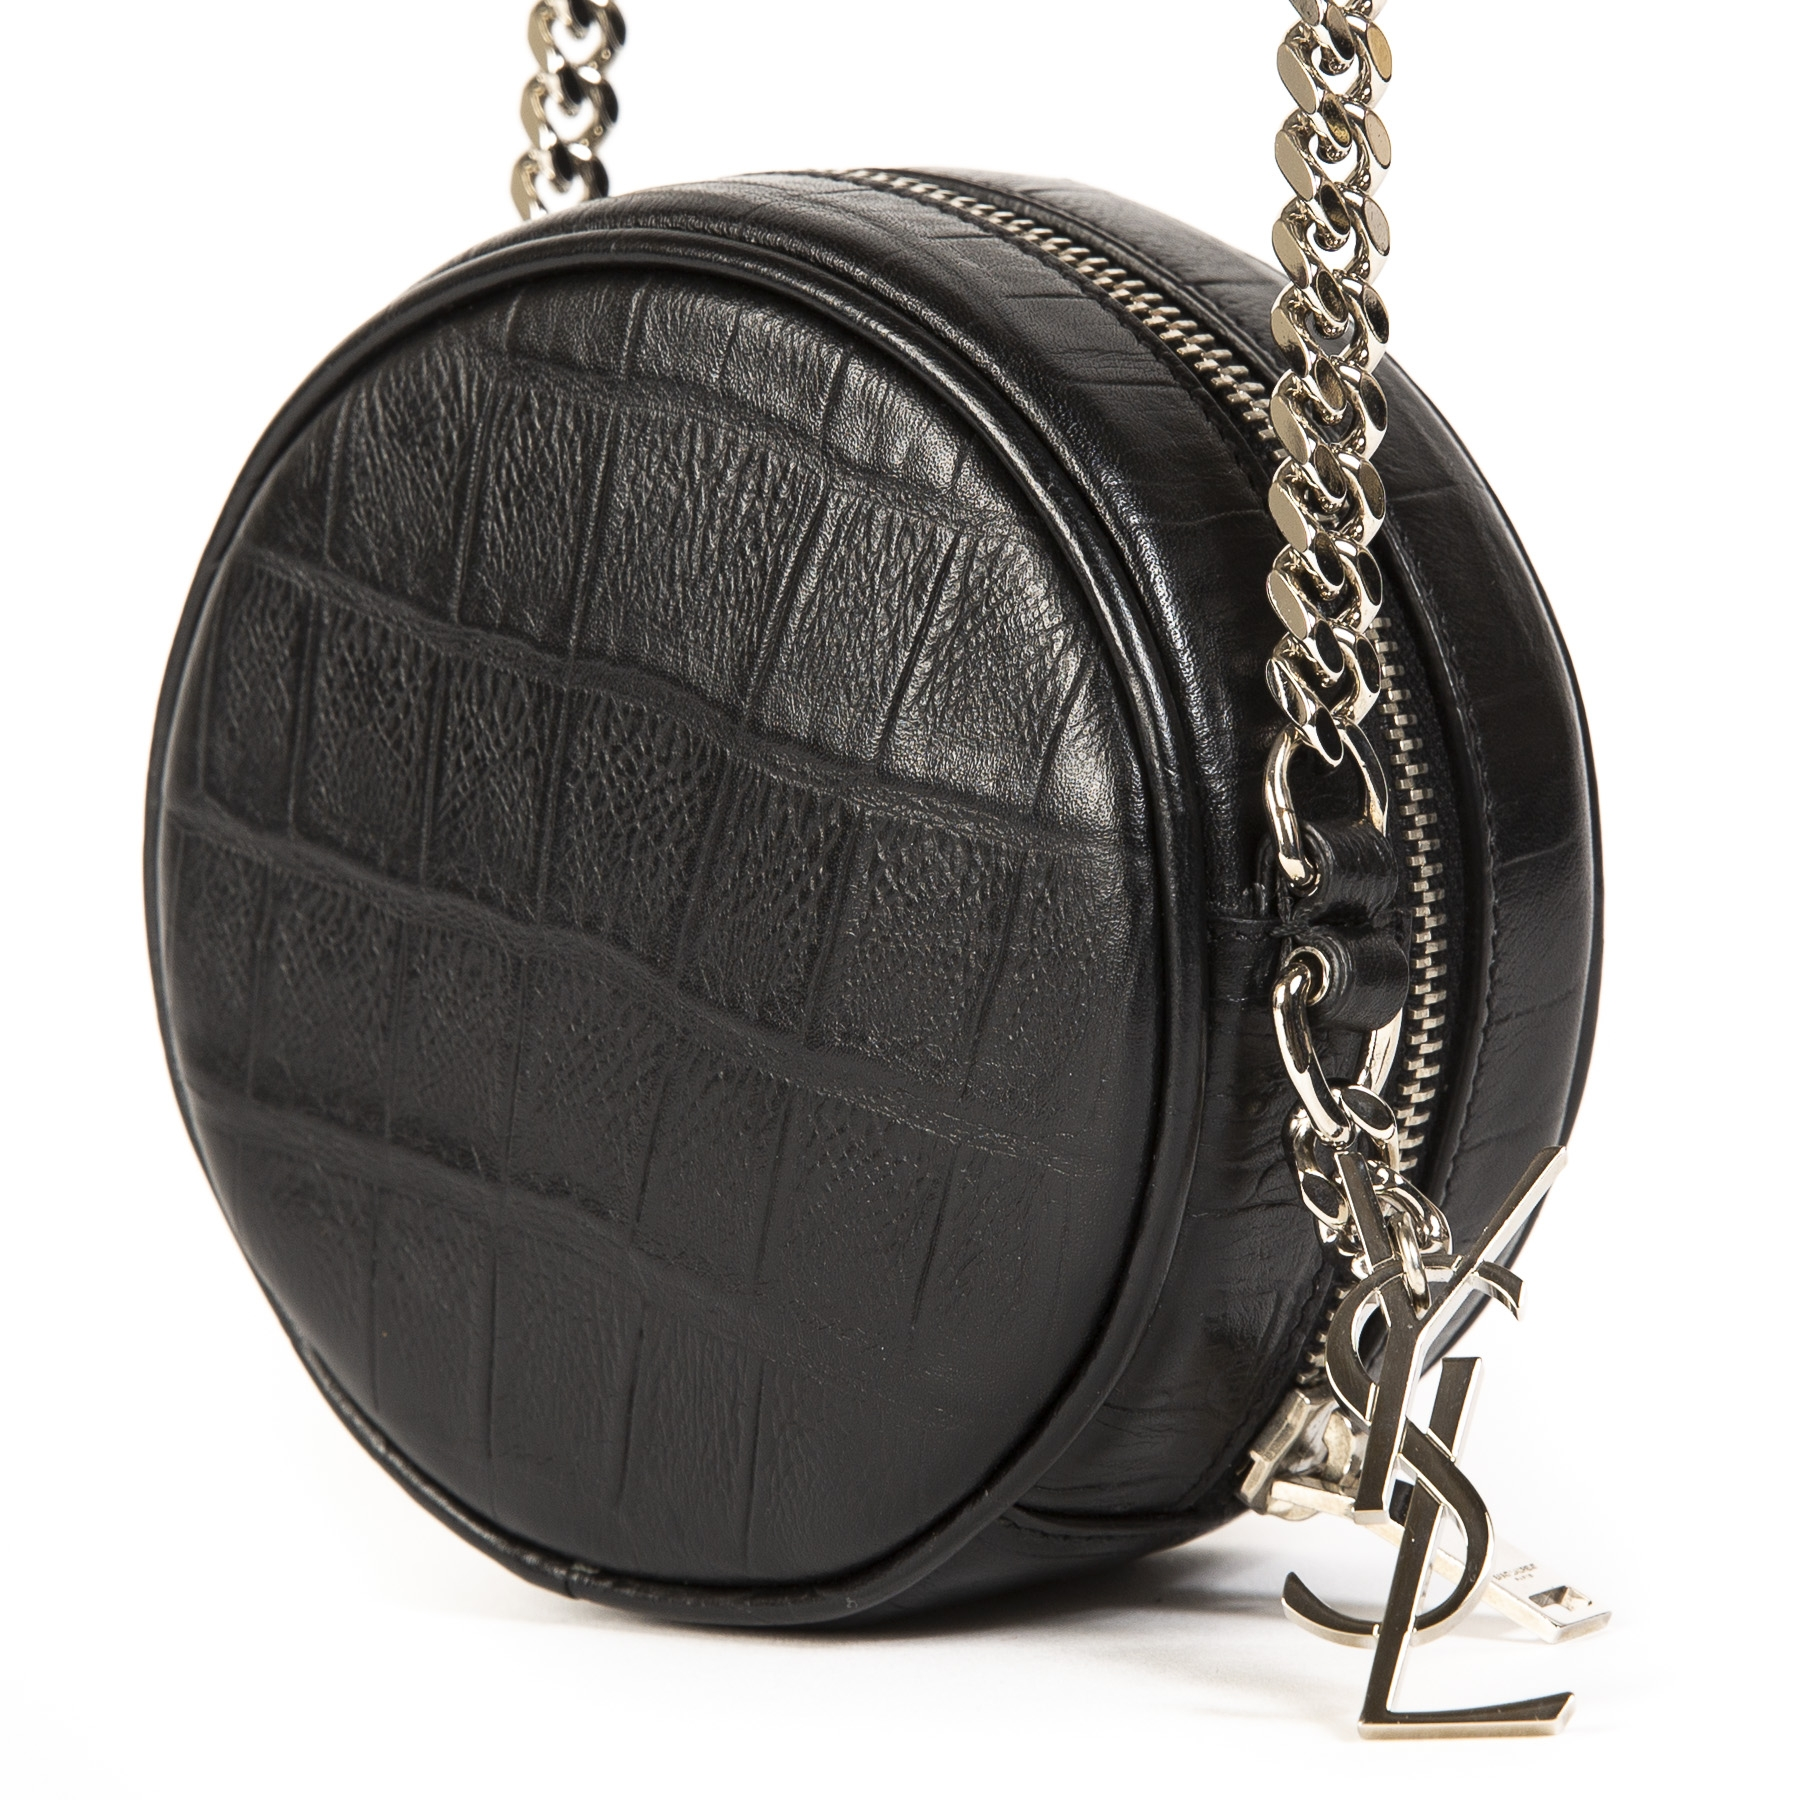 Saint Laurent Black Small Bubble Bag